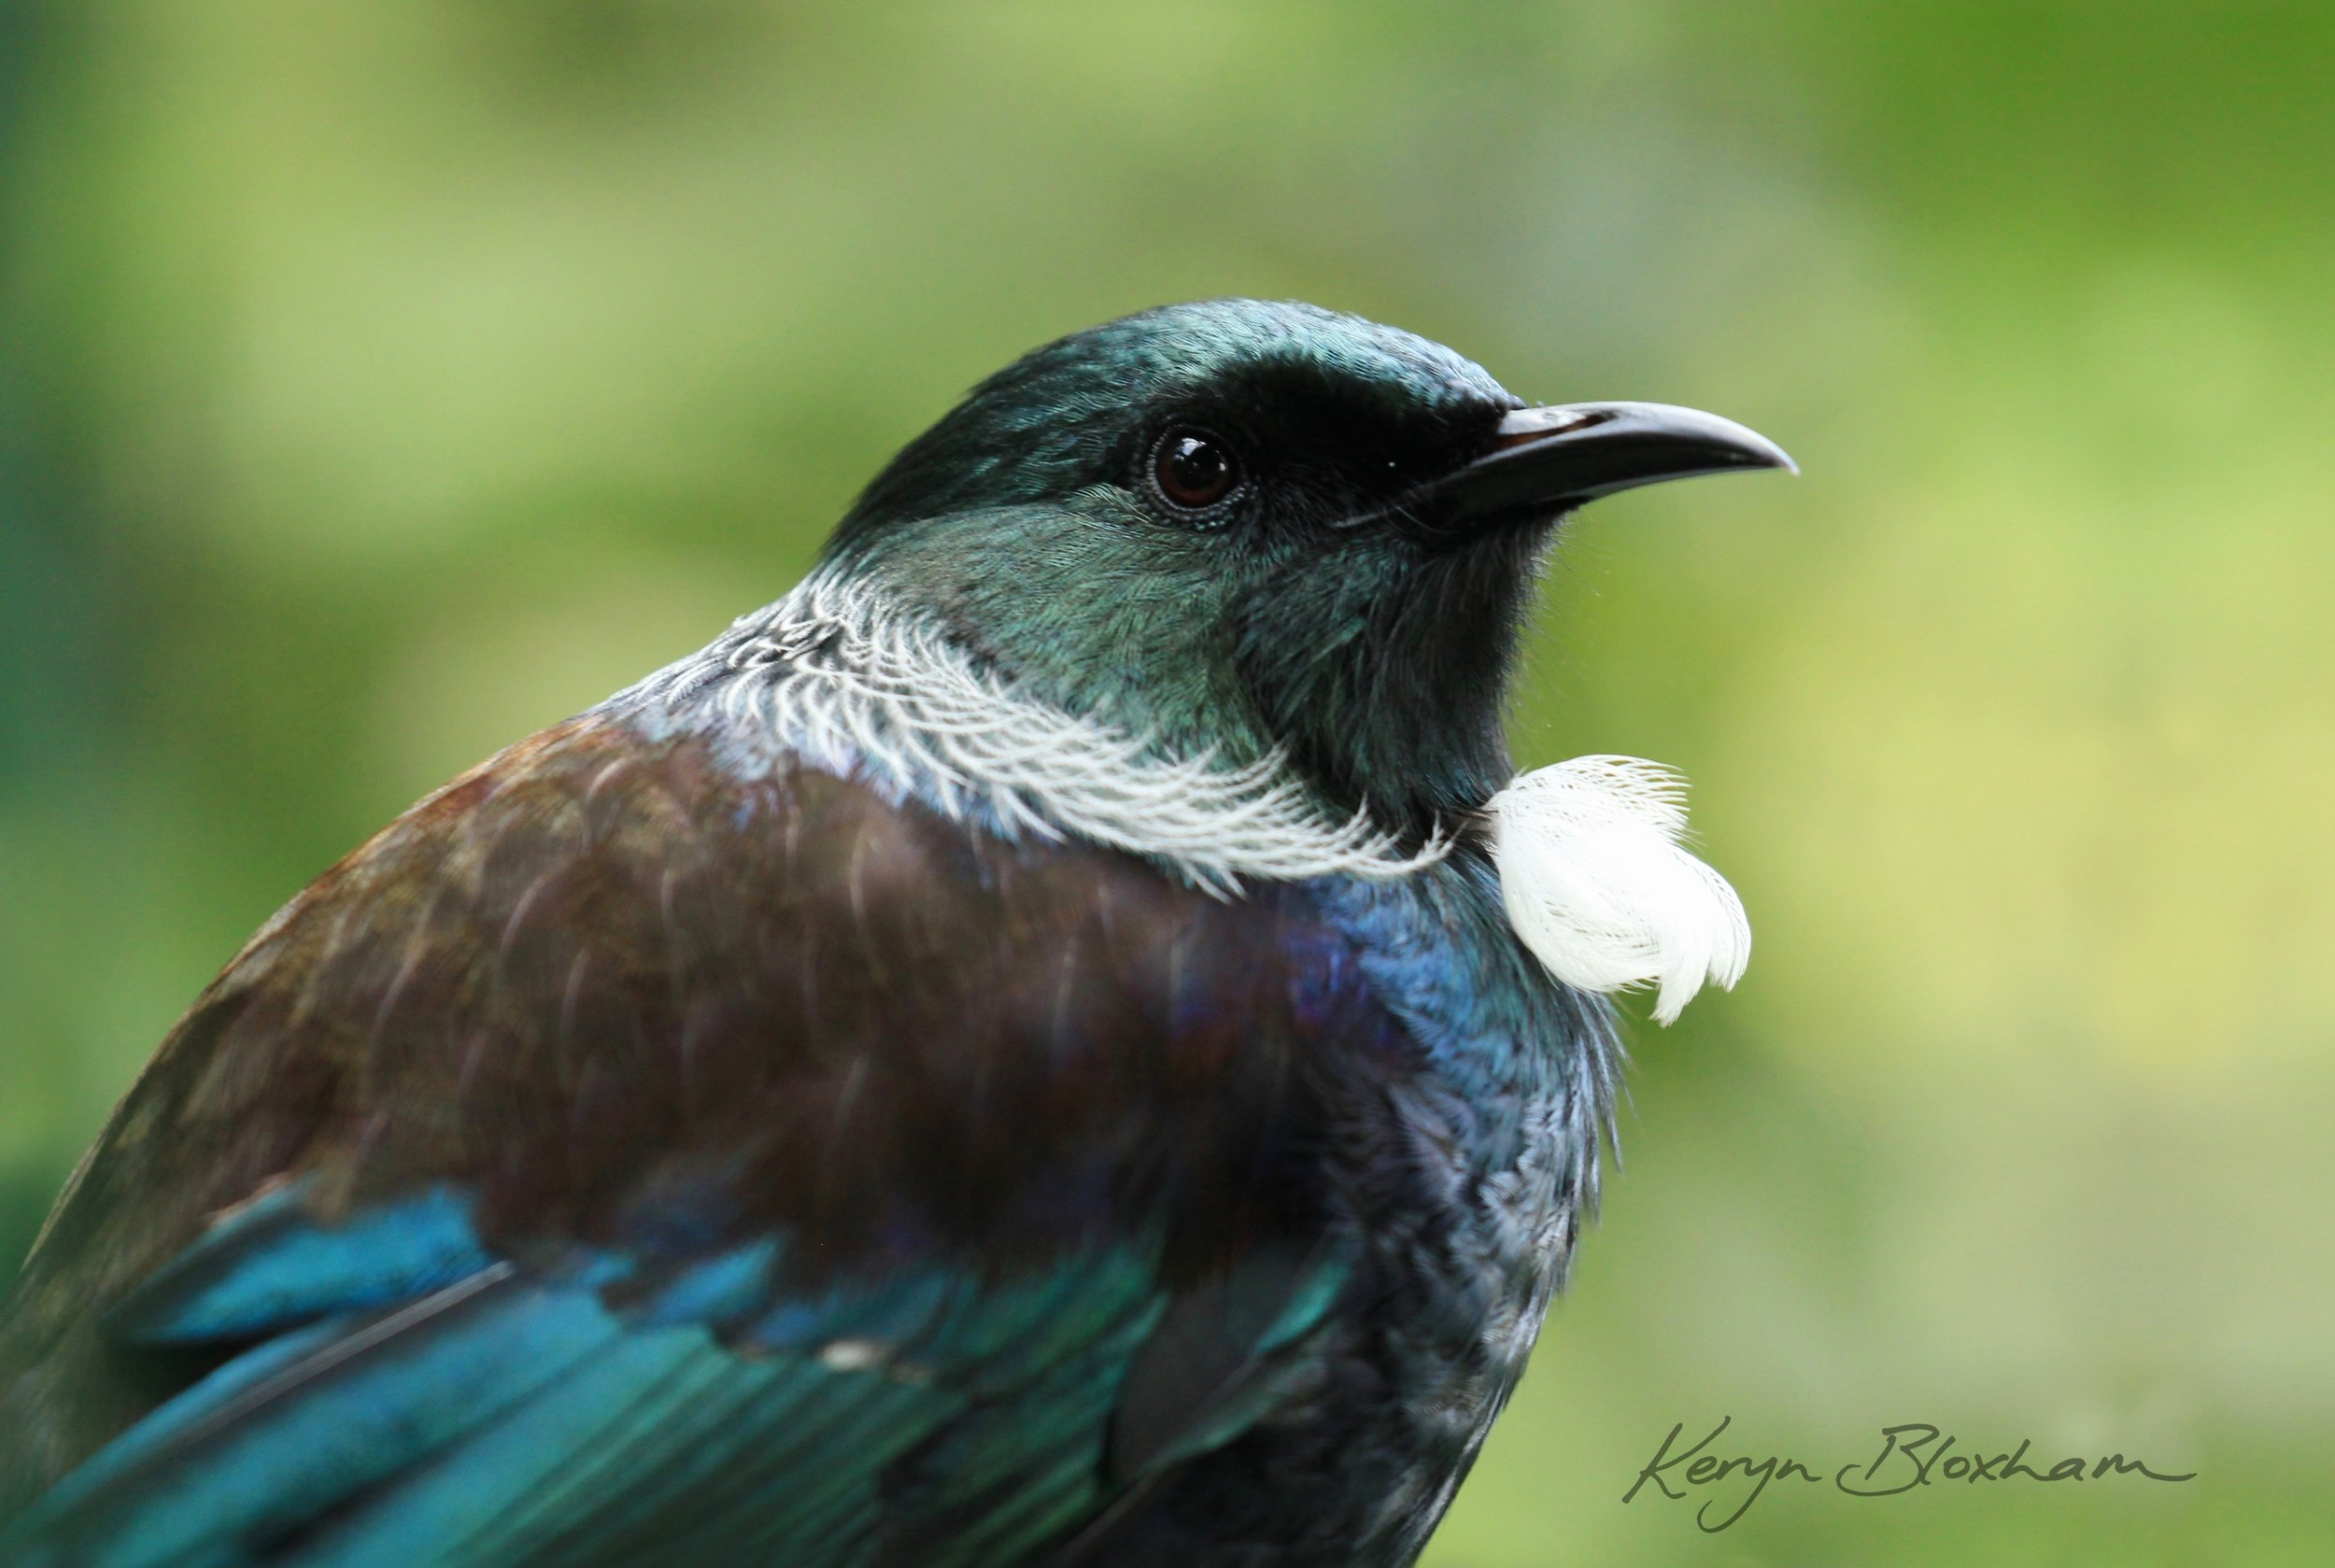 Tui - One of my most popular canvas prints, available as a variety of print sizes.